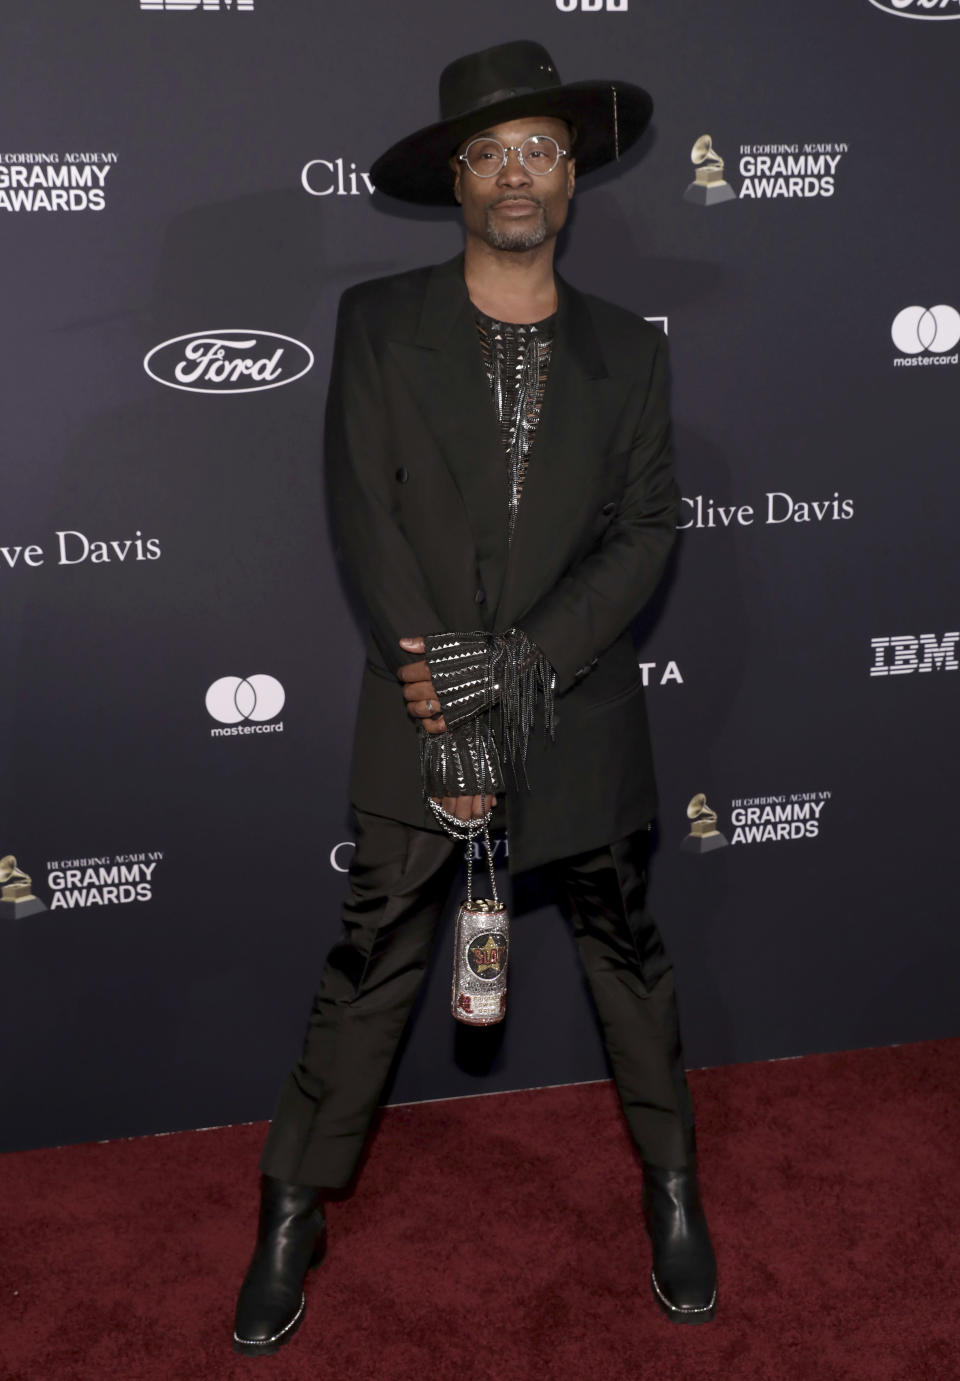 Billy Porter arrives at the Pre-Grammy Gala And Salute To Industry Icons at the Beverly Hilton Hotel on Saturday, Jan. 25, 2020, in Beverly Hills, Calif. (Photo by Mark Von Holden/Invision/AP)